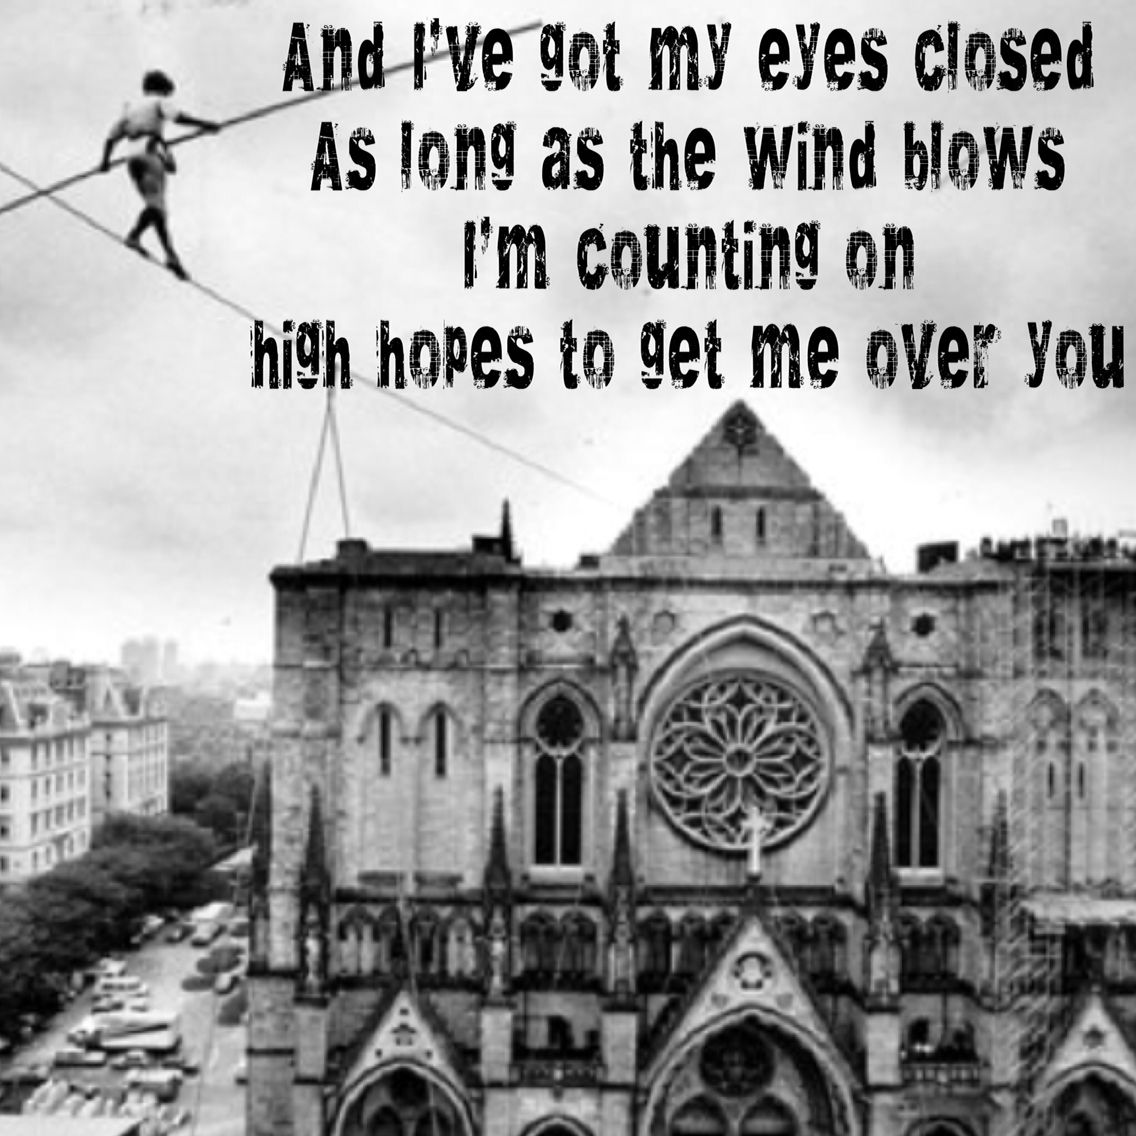 Man On A Wire, The Script   Soundtrack of my life   Music words